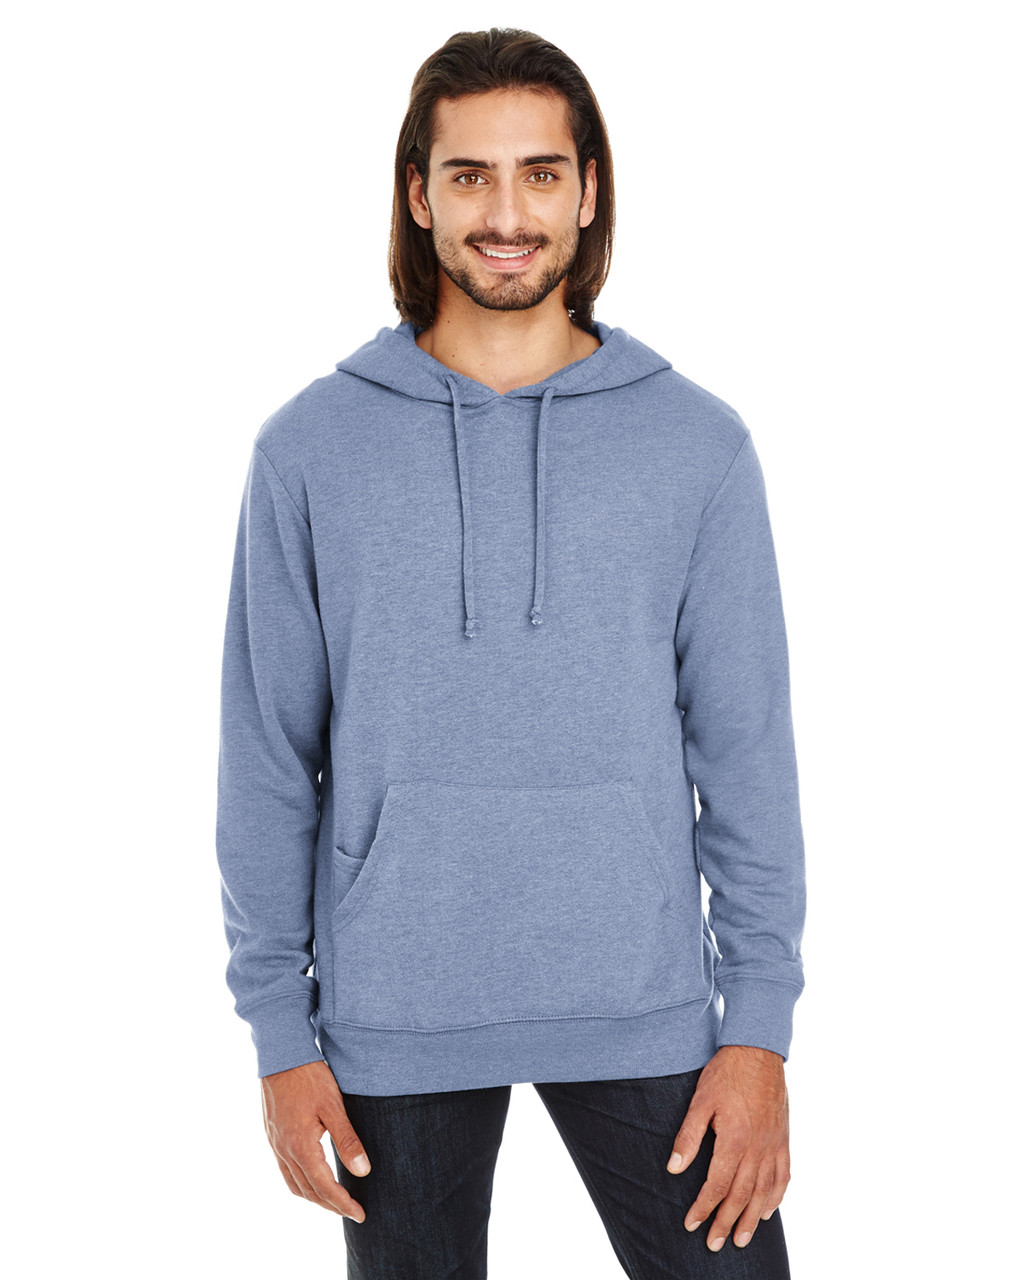 Denim Heather - 321H Threadfast Unisex Triblend French Terry Hoodie | Blankclothing.ca